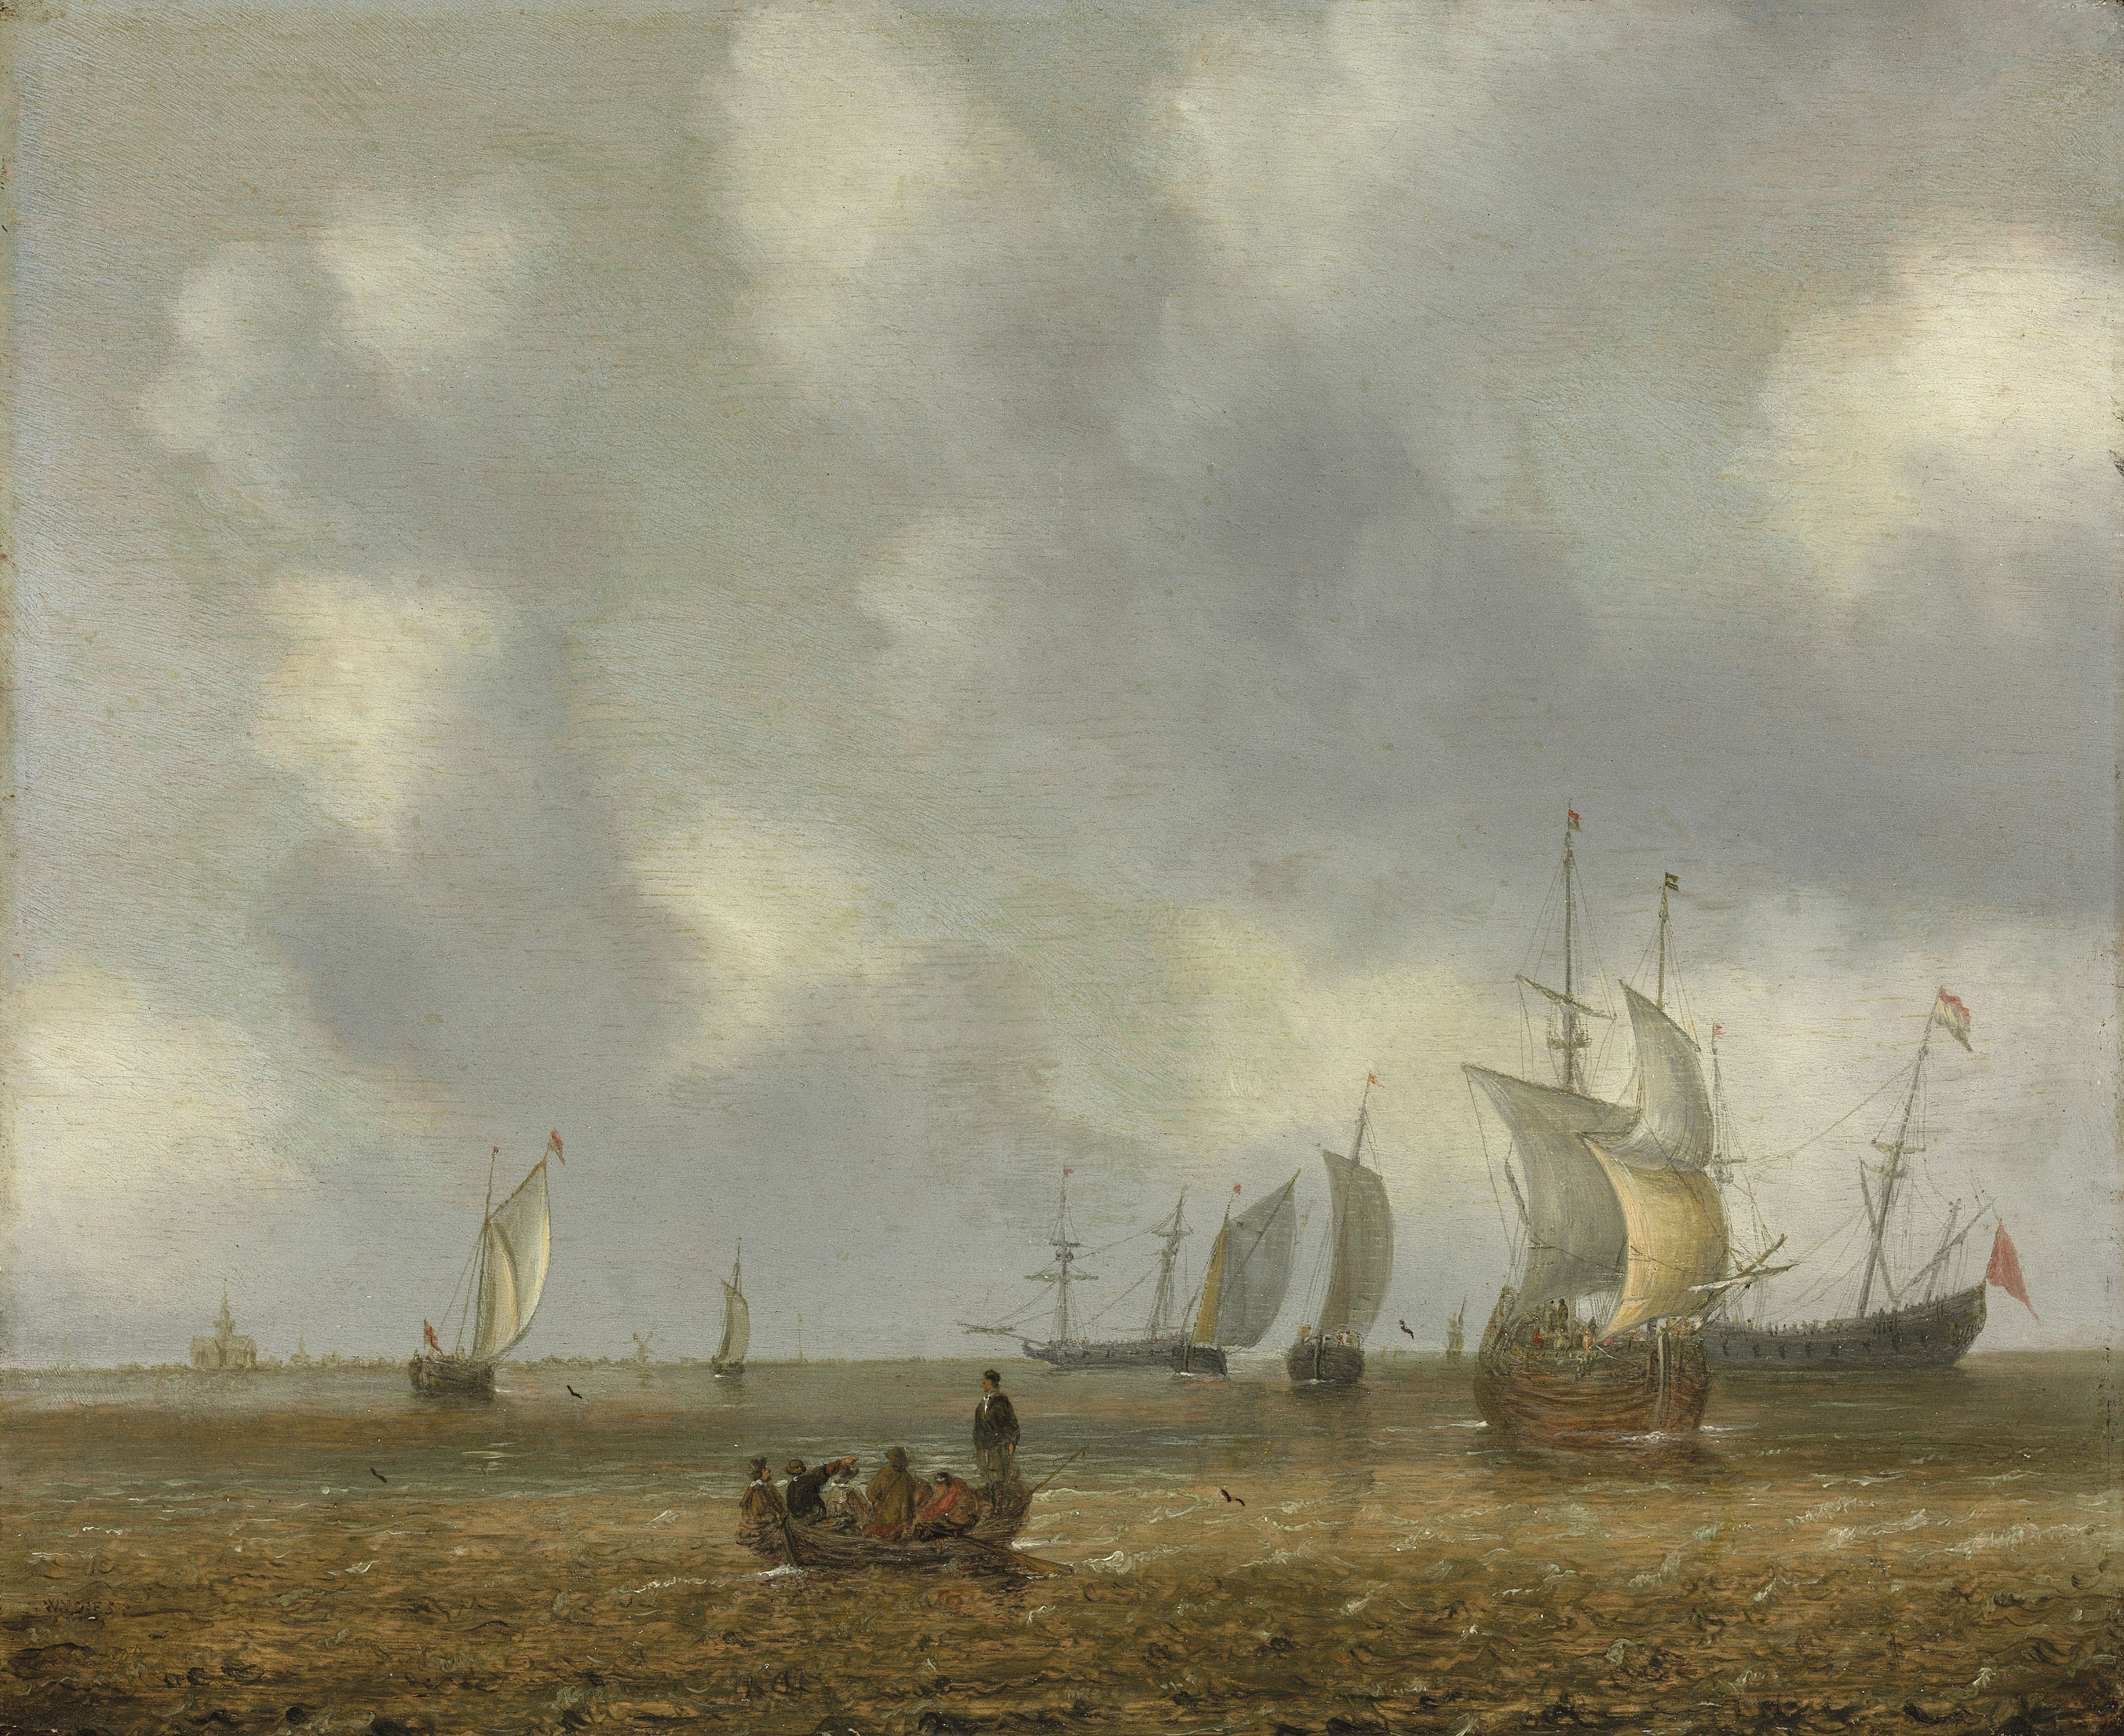 Shipping and vessels on a calm sea